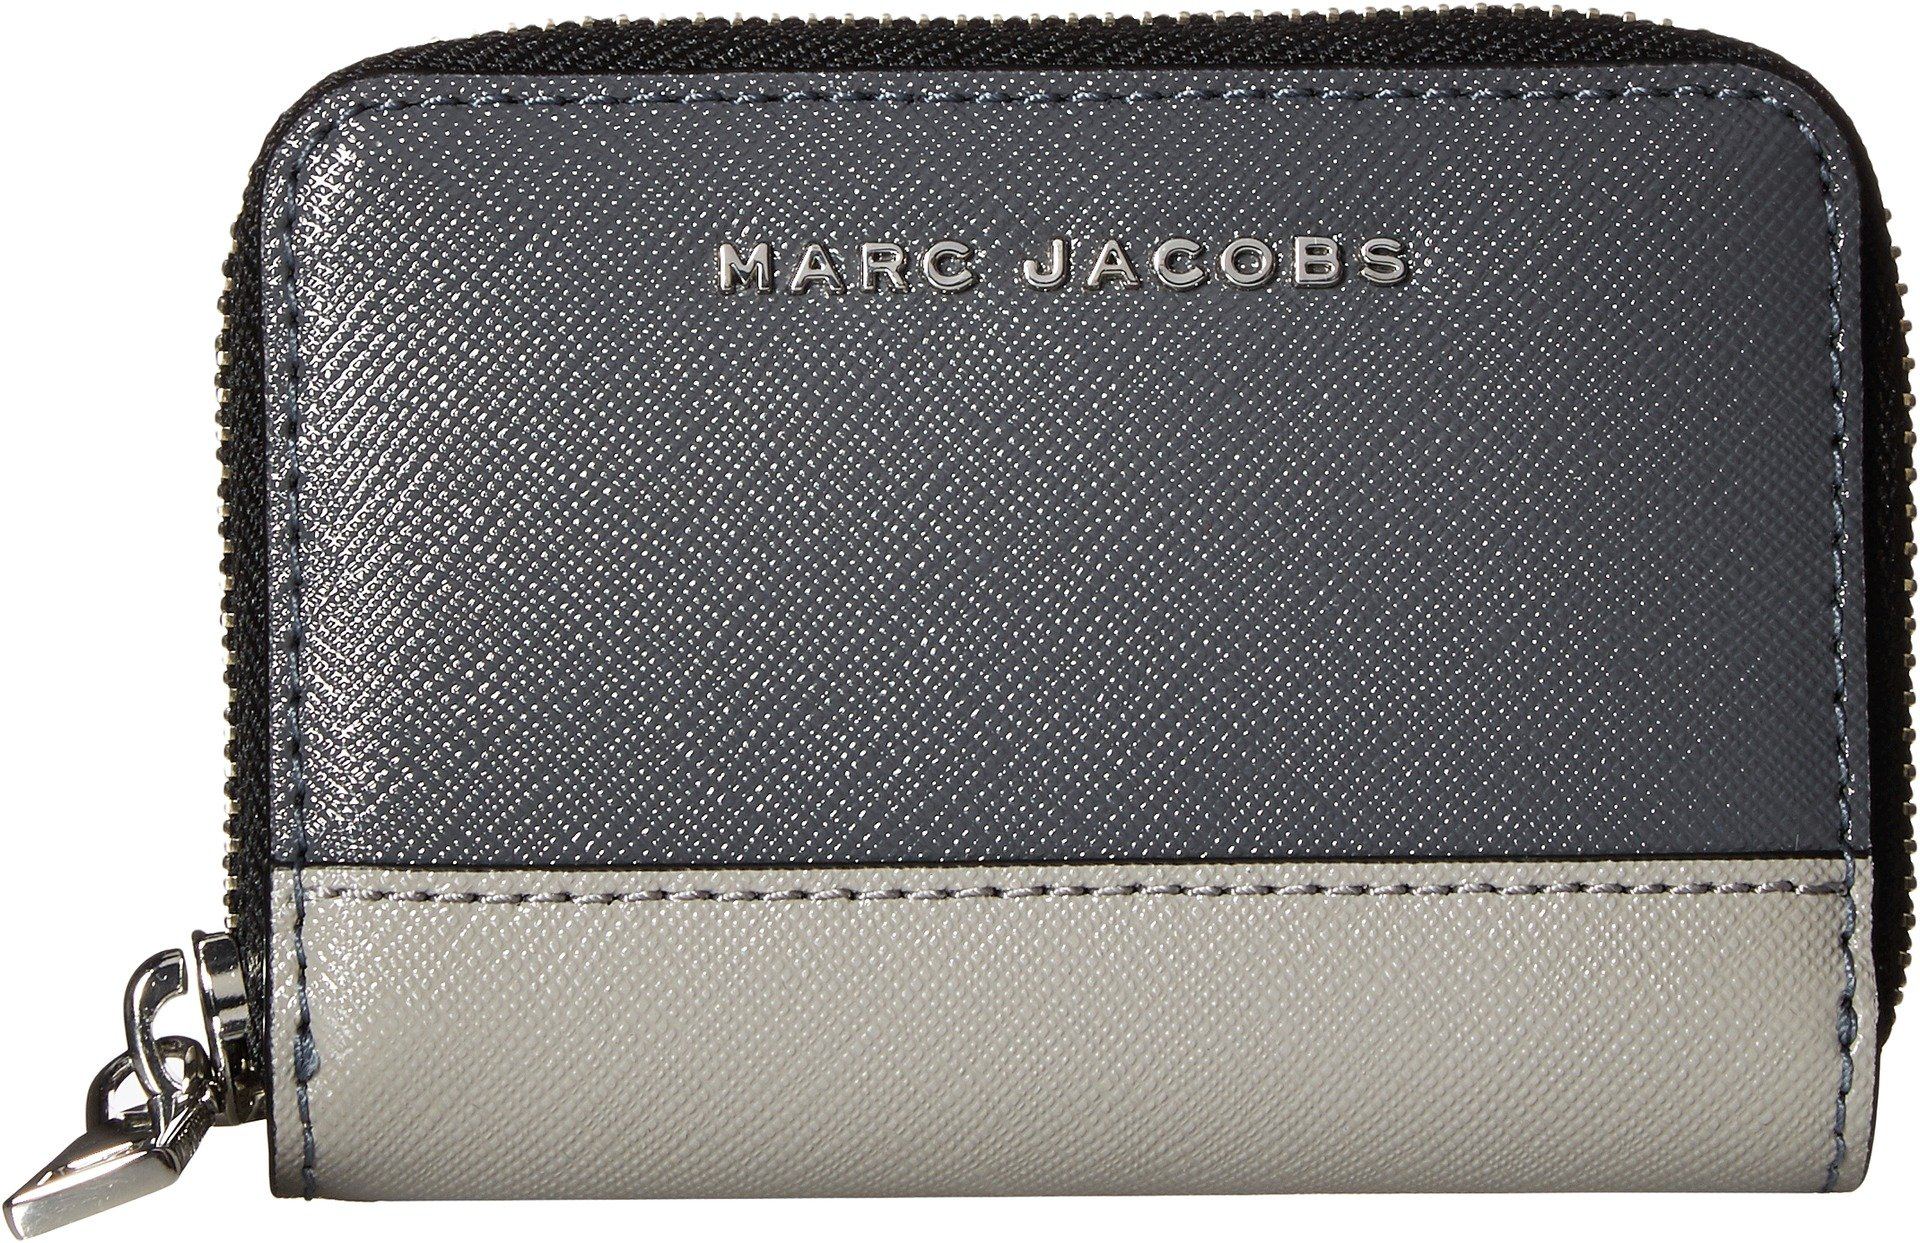 Marc Jacobs Women's Saffiano Metal Letters Mini Zip Card Case Moody Grey Multi One Size